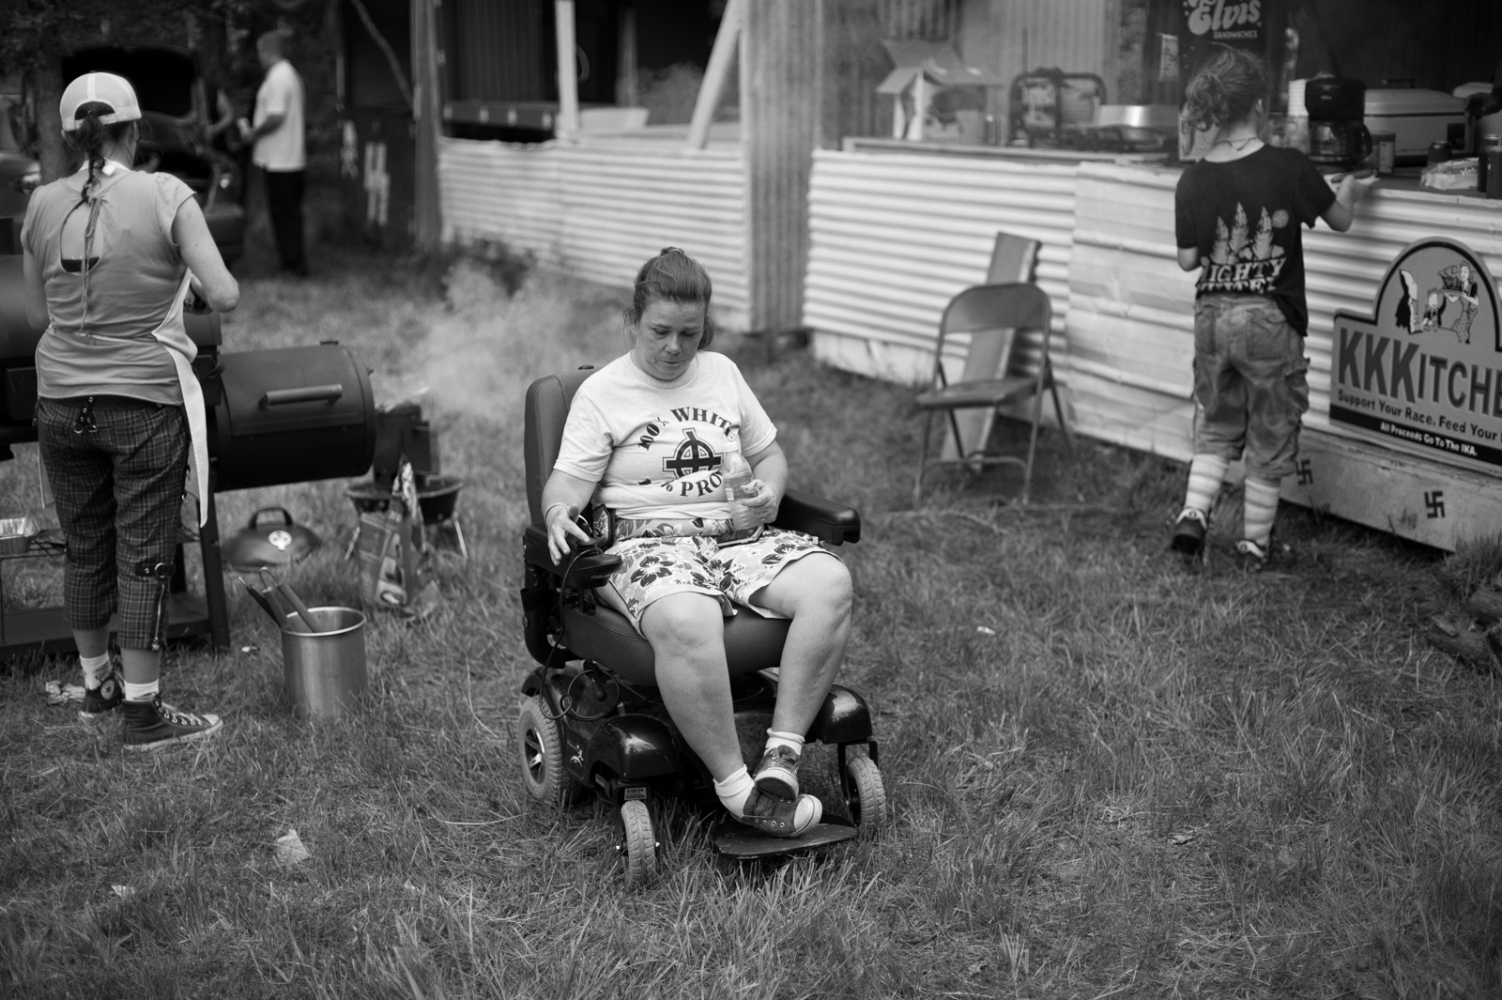 Kentucky.A Klan hostedMemorial Day weekend cookout at a former 15-acre paramilitary compoud.